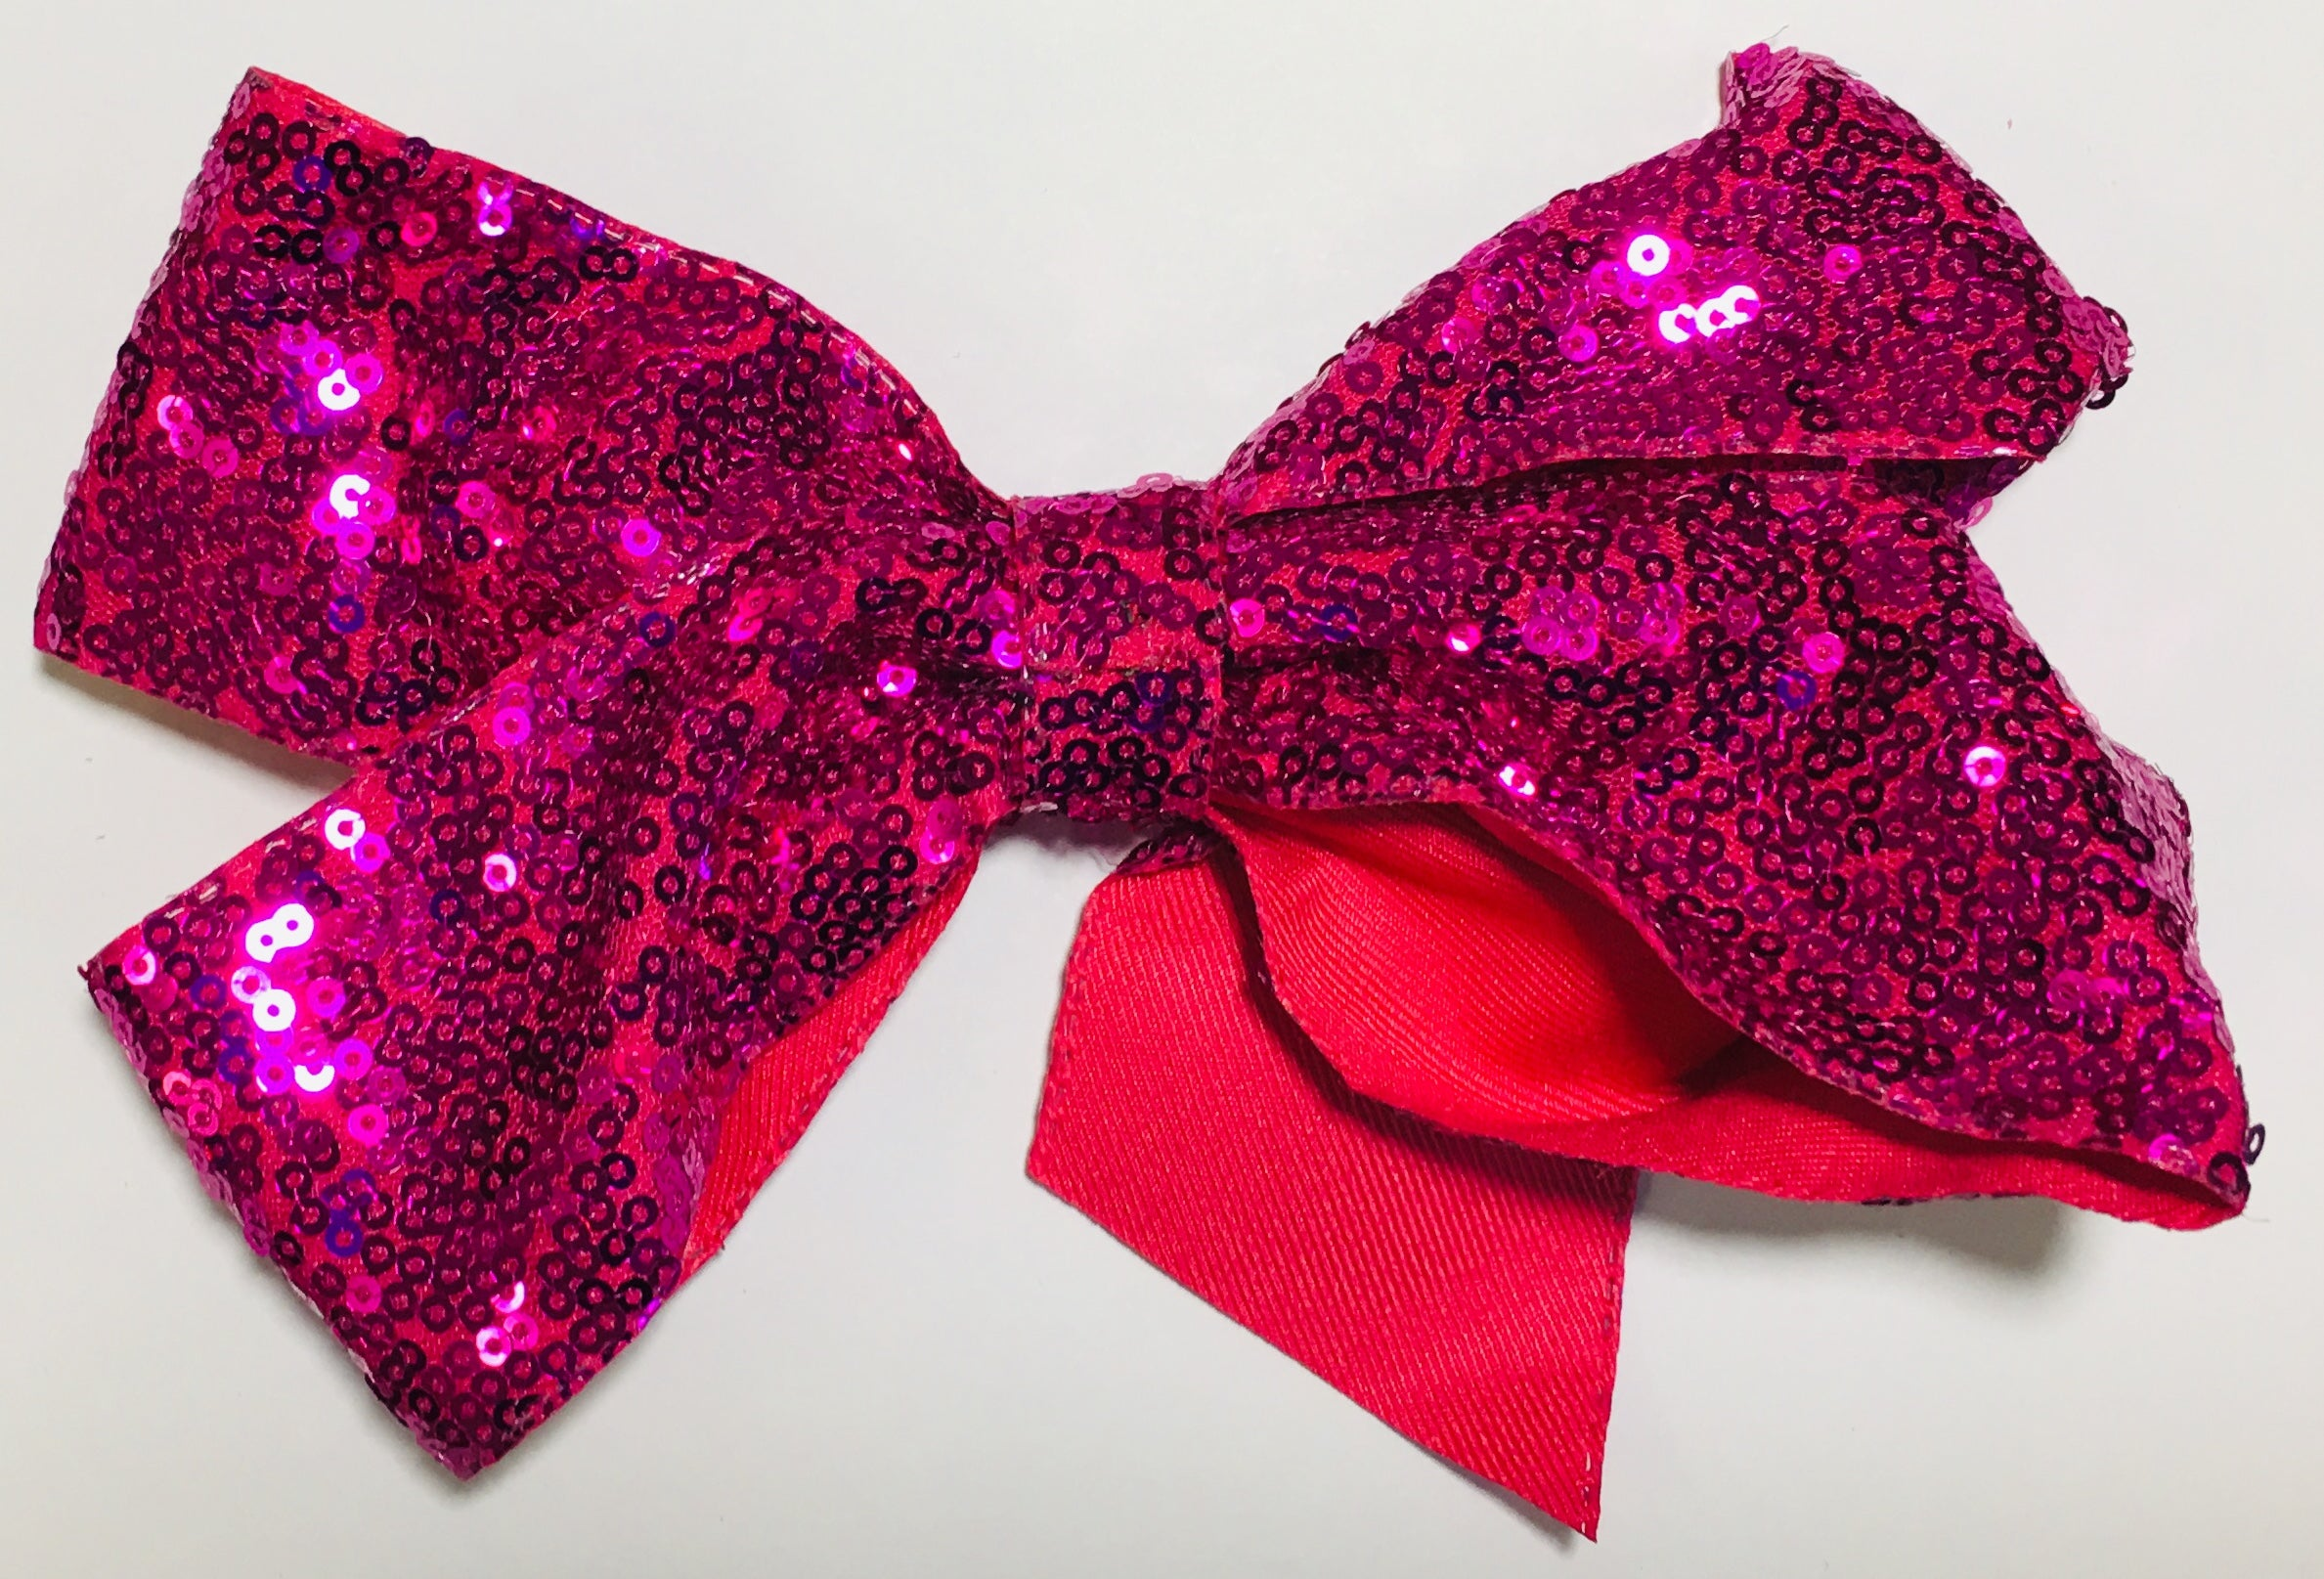 Sequin Hair Bow - Hot Pink - shabbyflowers.com